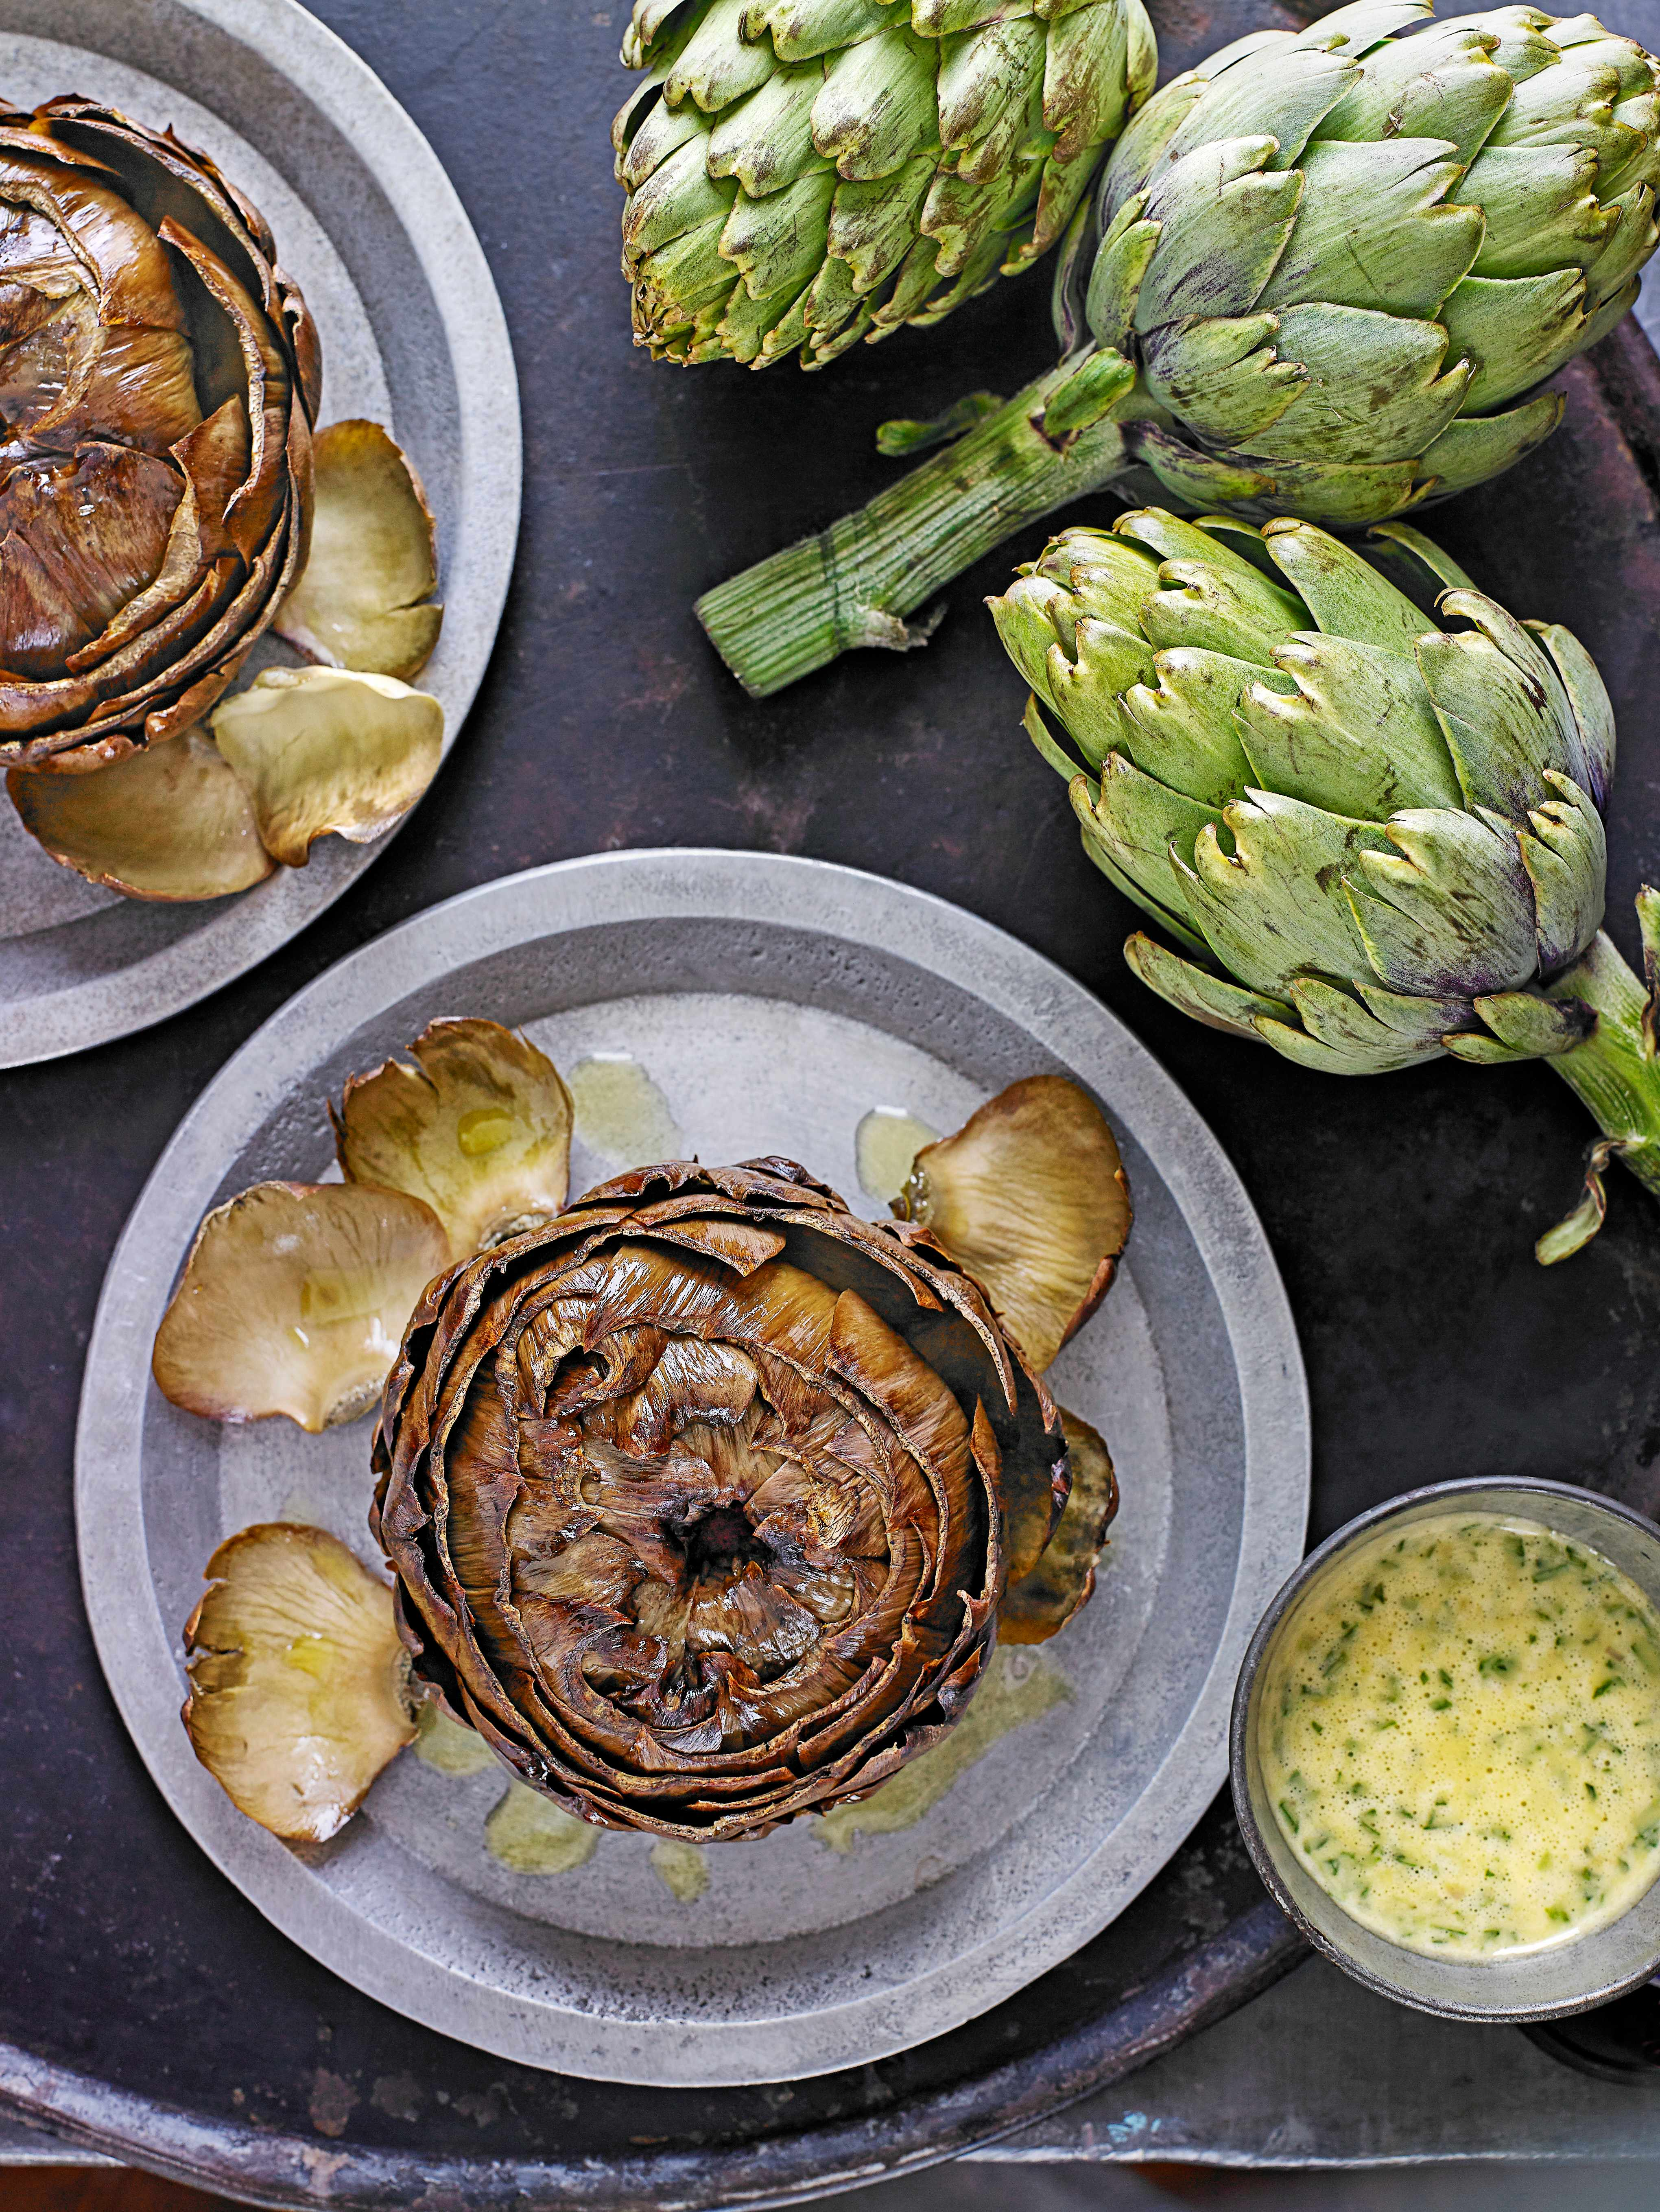 Roasted artichokes with tarragon vinaigrette